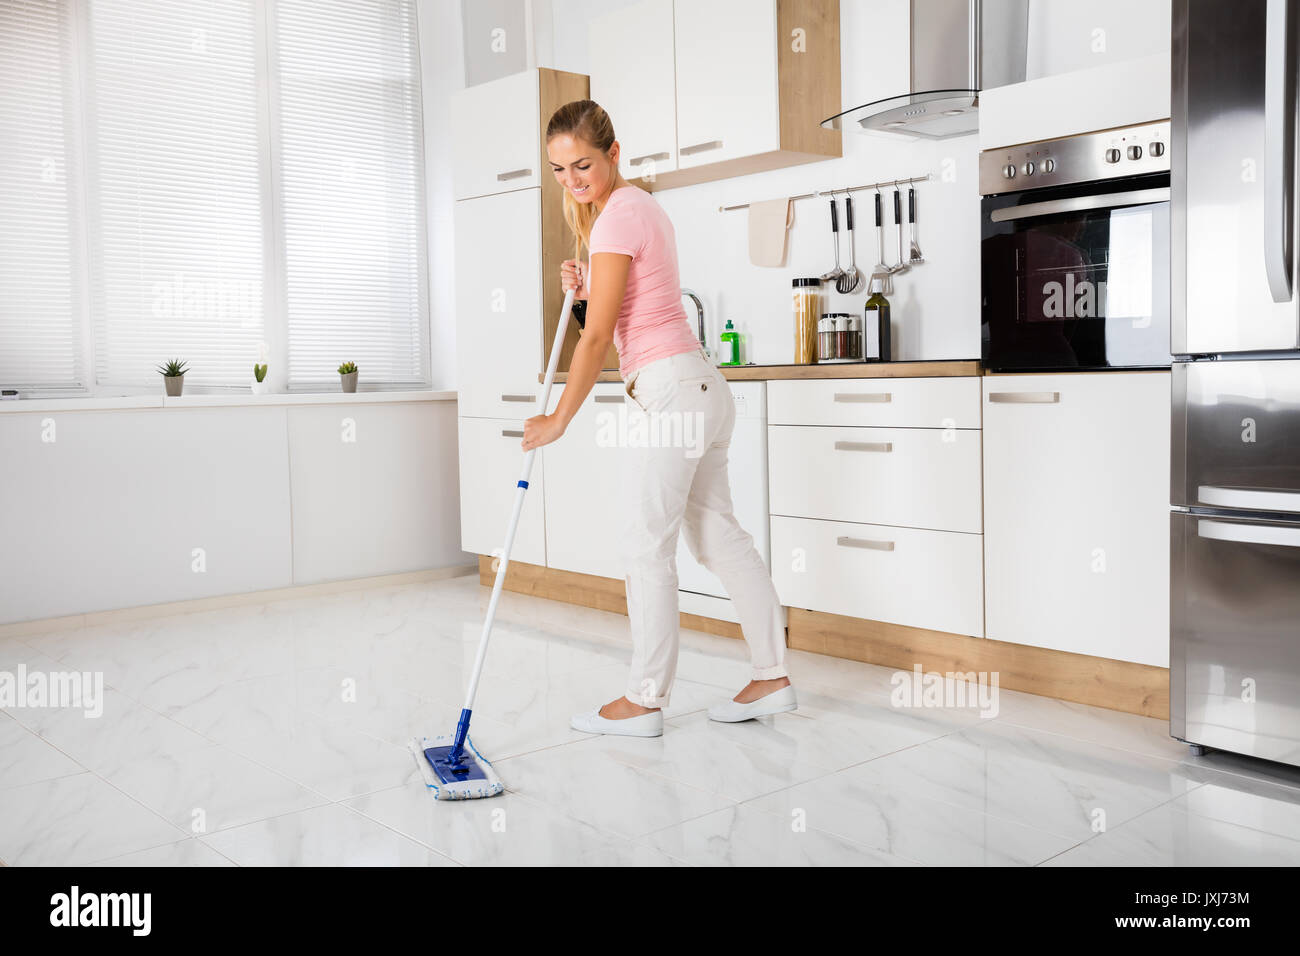 Smiling Cleaning Service Woman With Mop Cleaning Floor In The ...